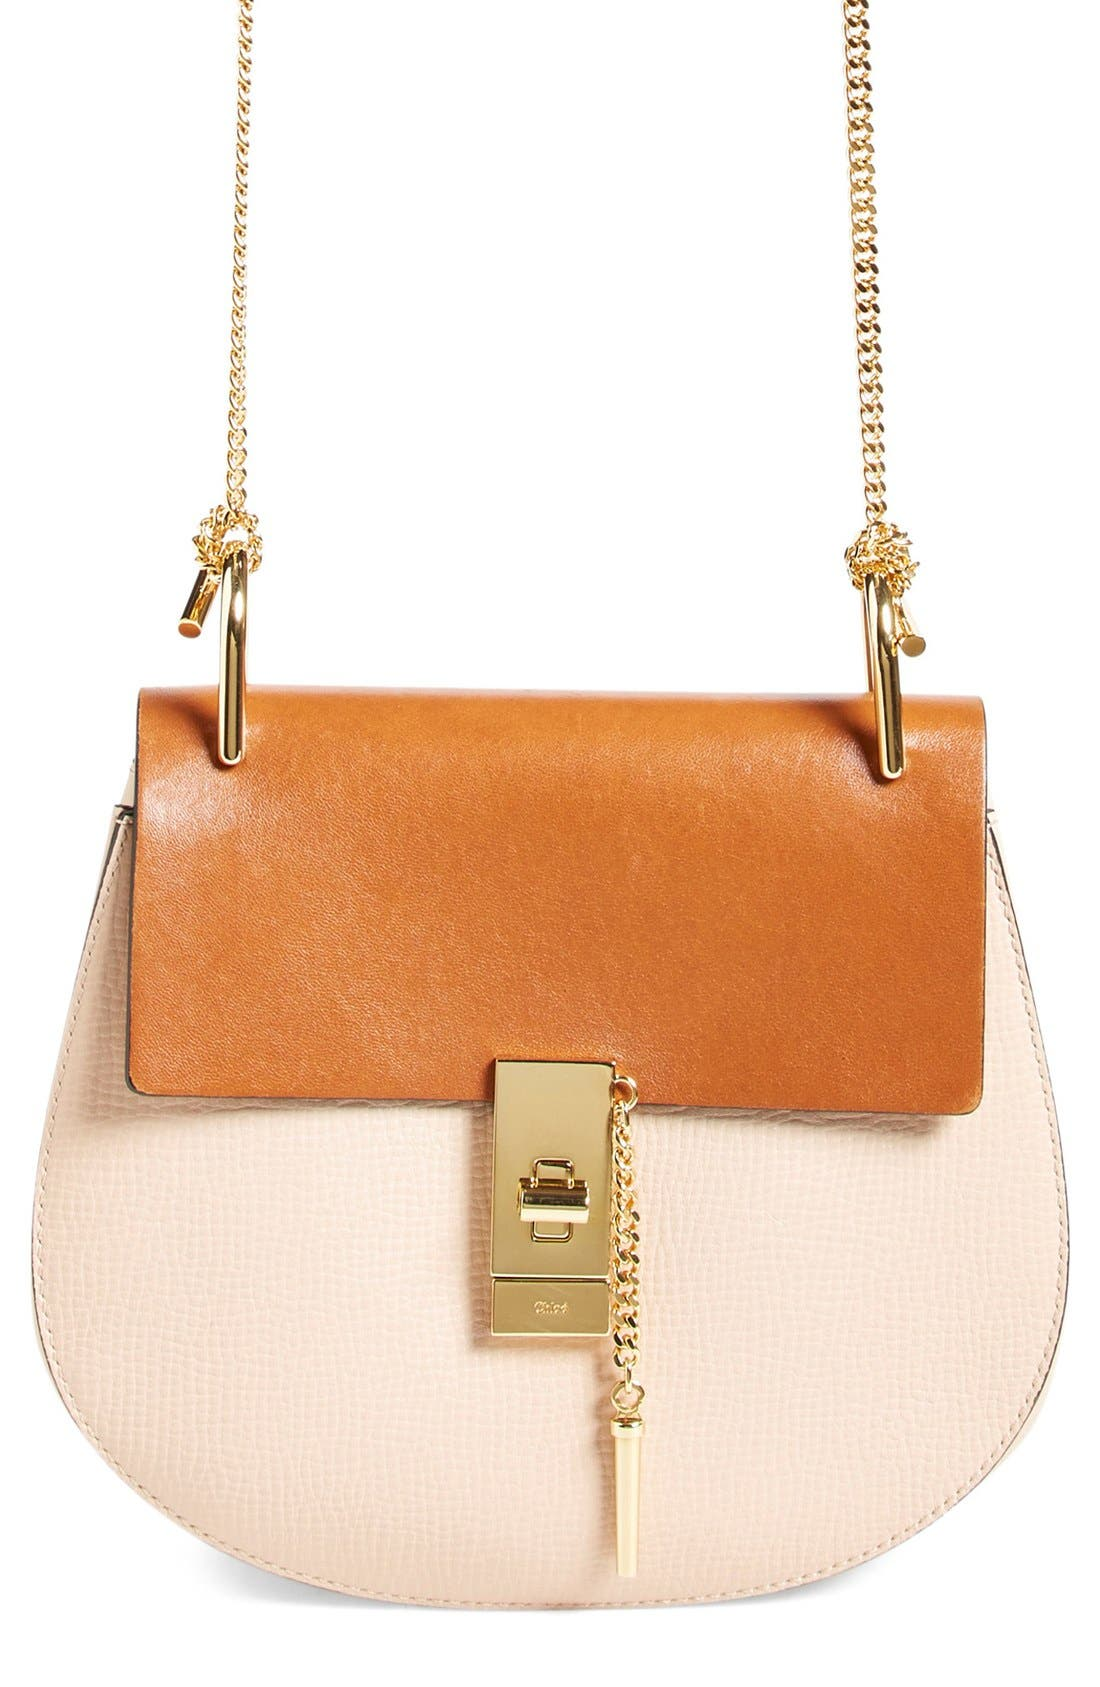 CHLOÉ 'Small Drew' Leather Shoulder Bag